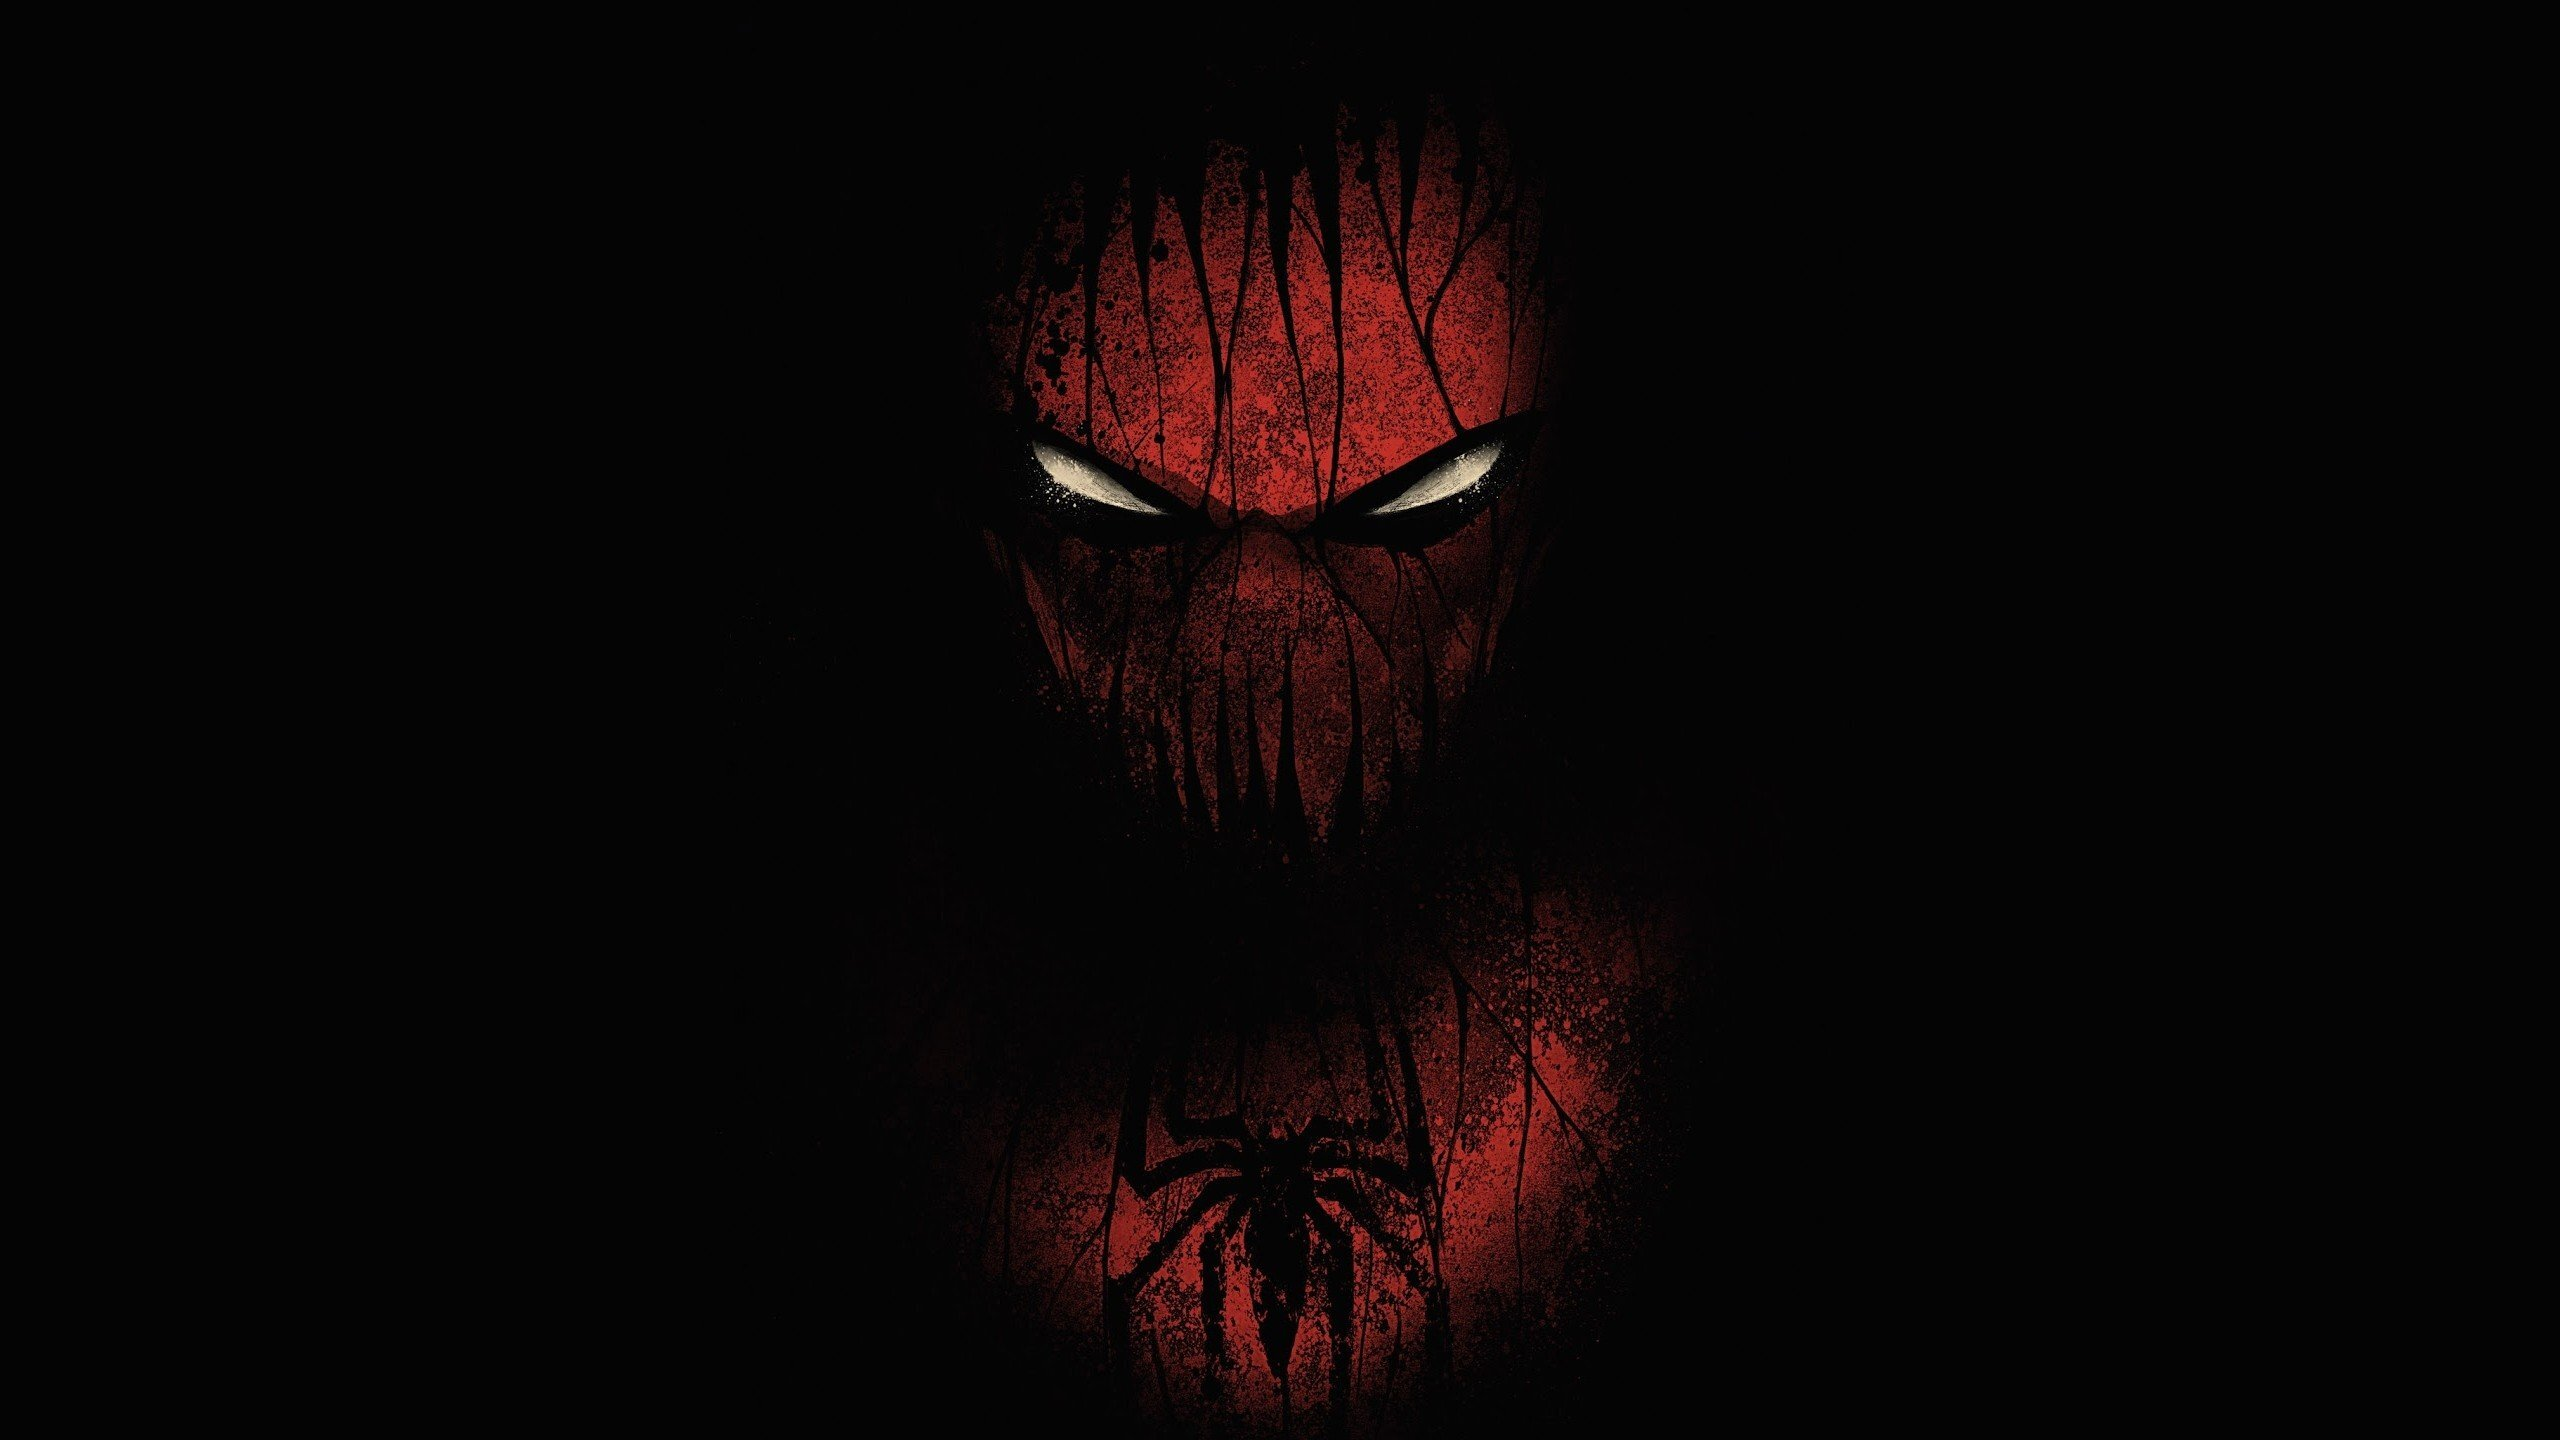 2560x1440 Red Black Spiderman 1440p Resolution Hd 4k Wallpapers